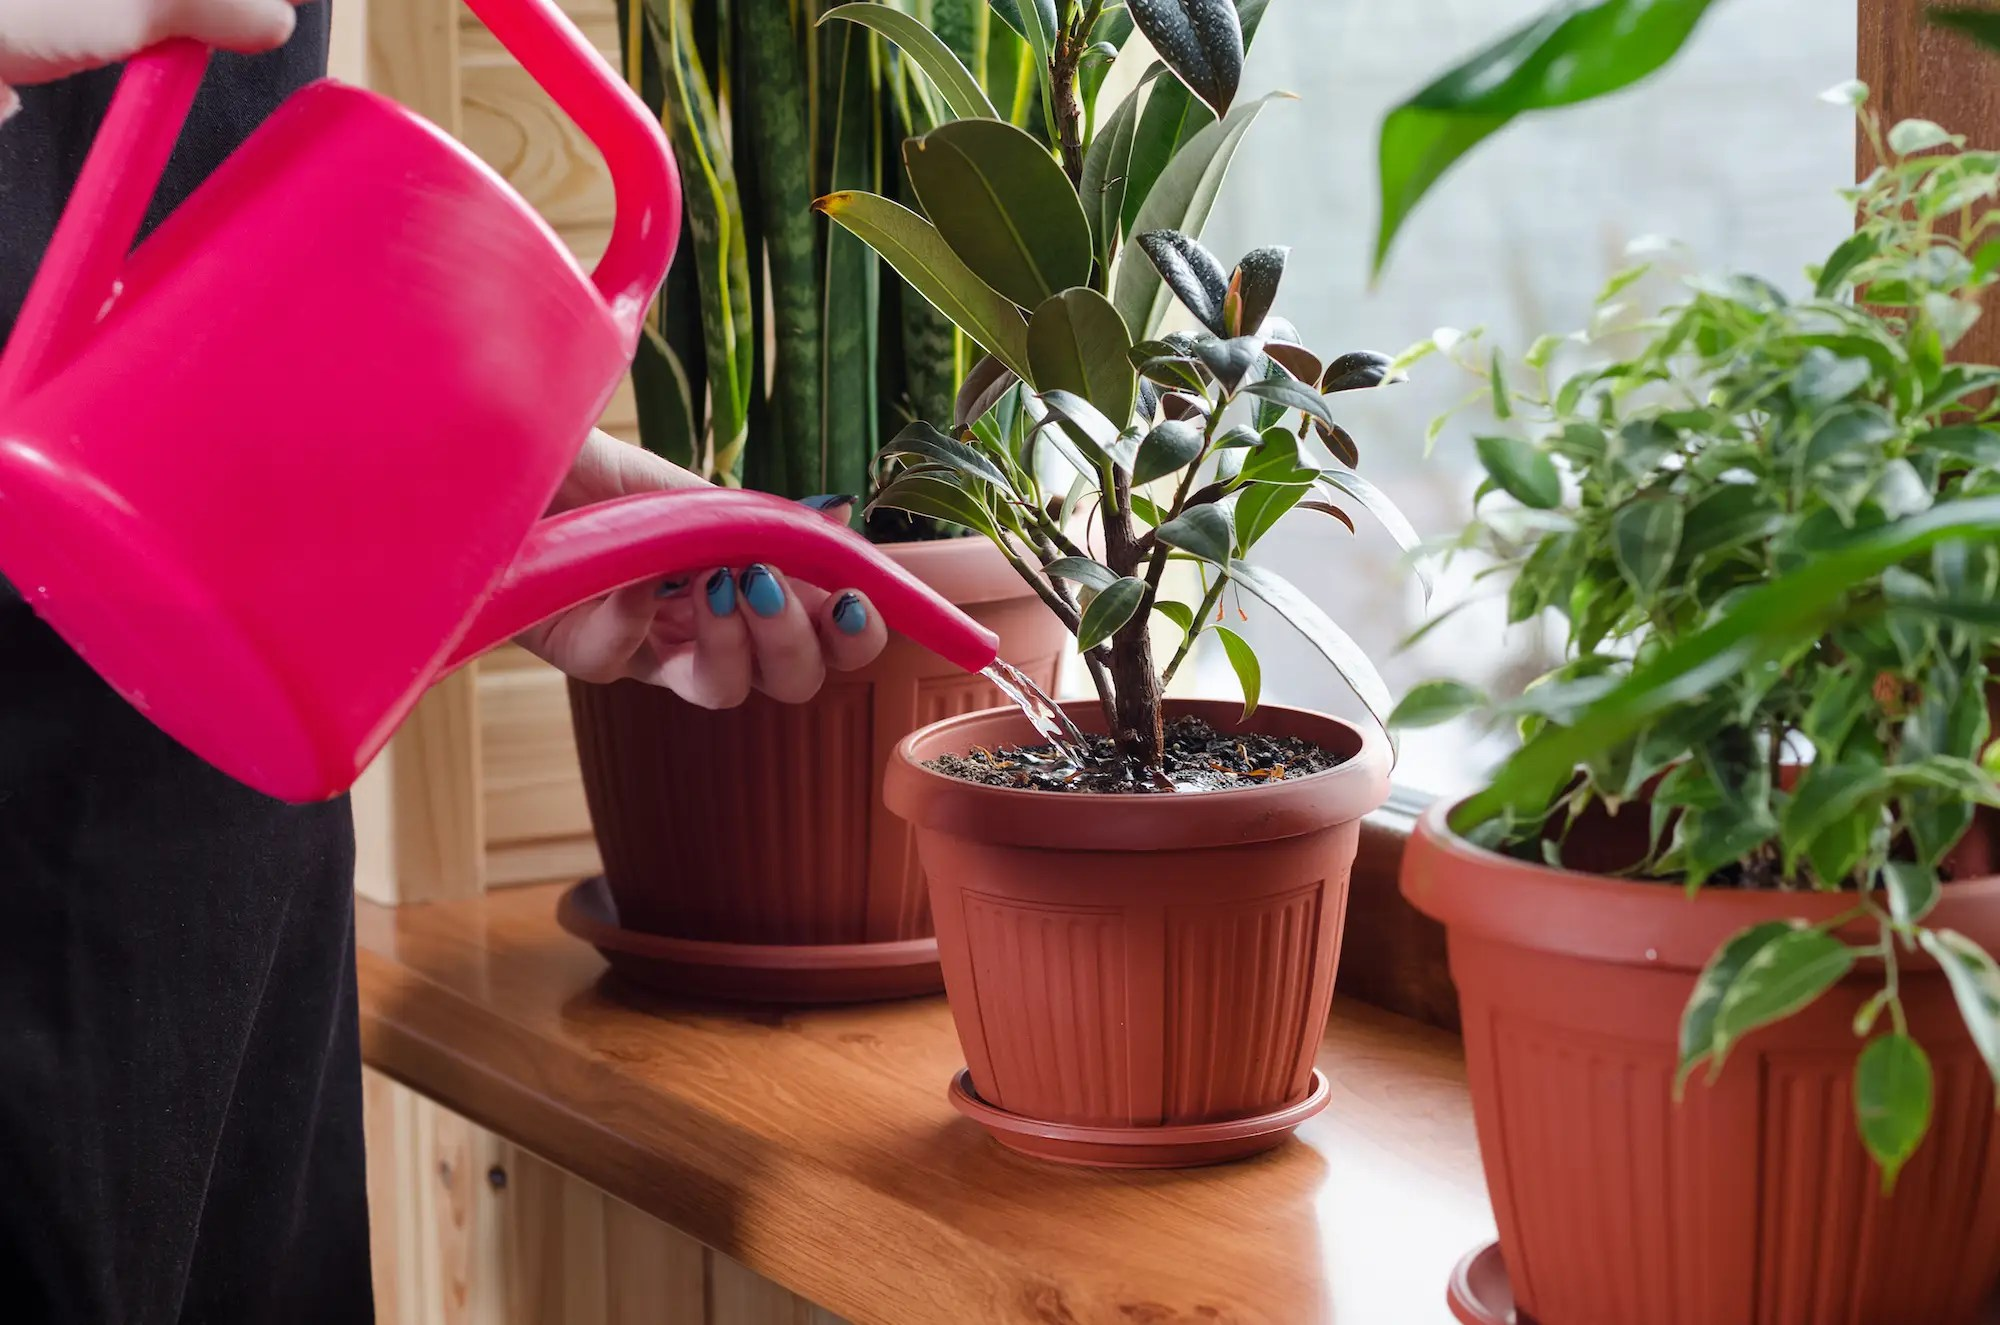 In House Plant How Much To Water Houseplants Expert Trick For Keeping